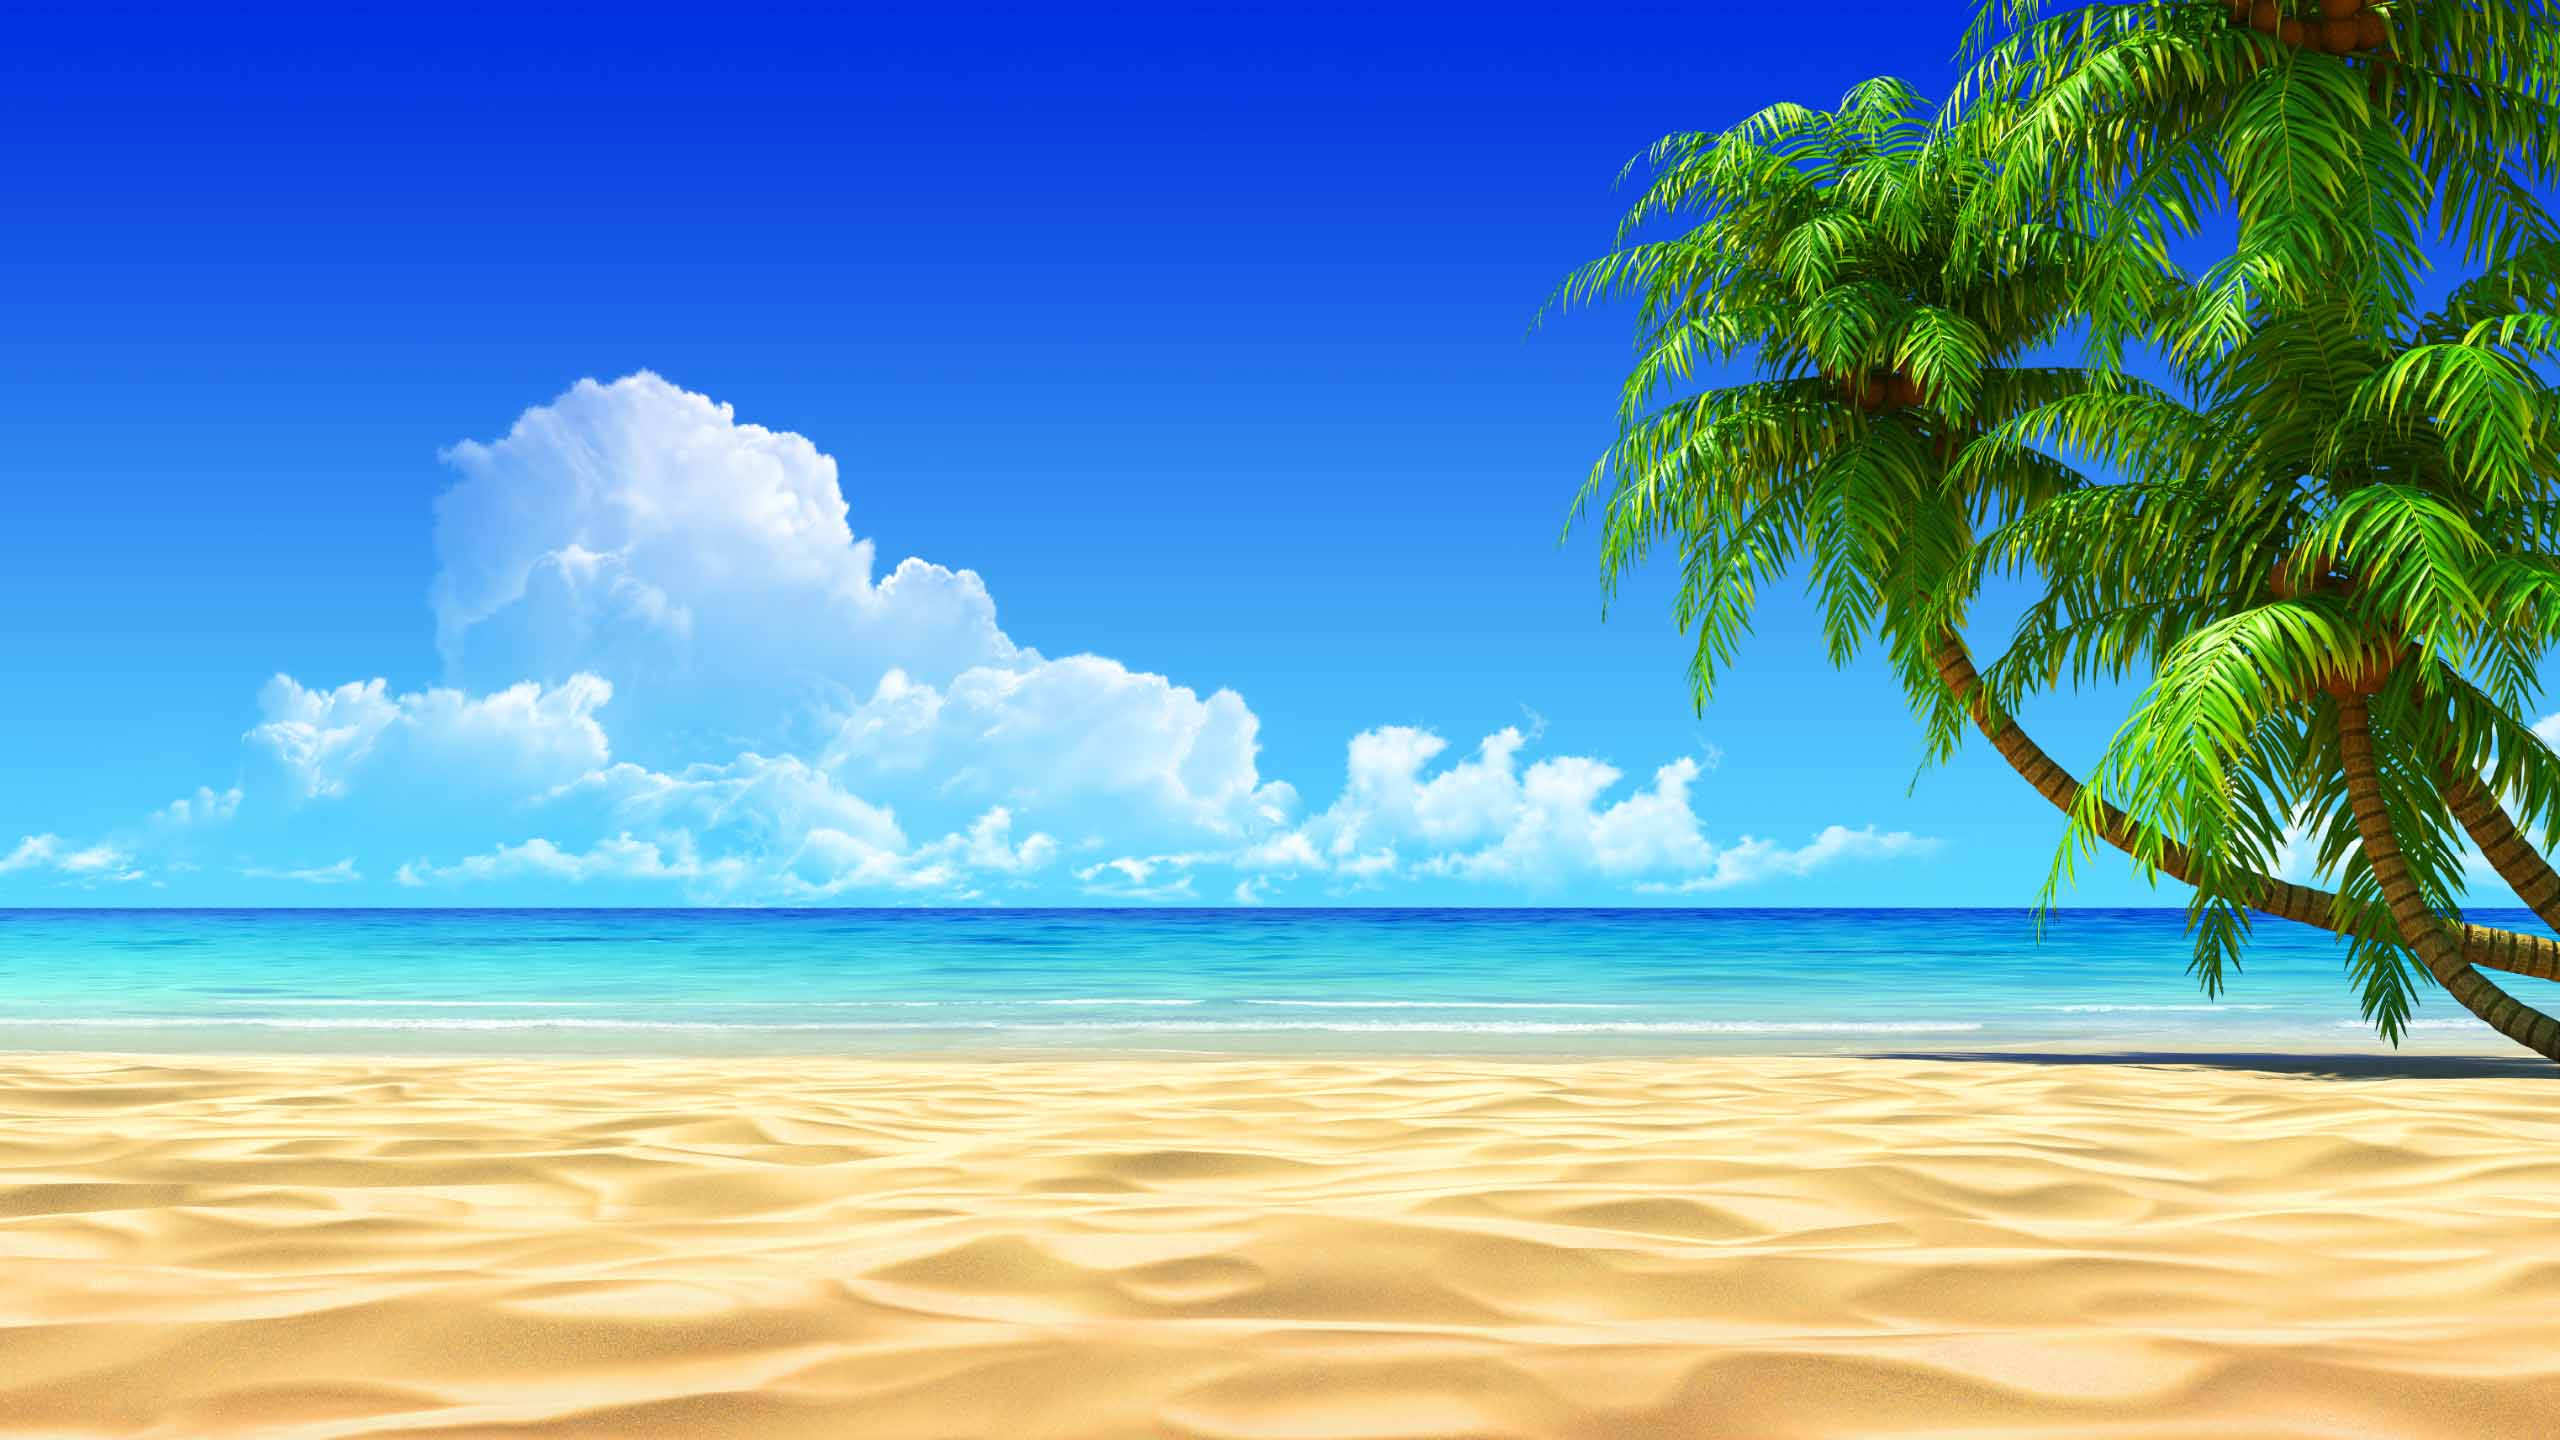 free tropical desktop backgrounds - wallpaper cave